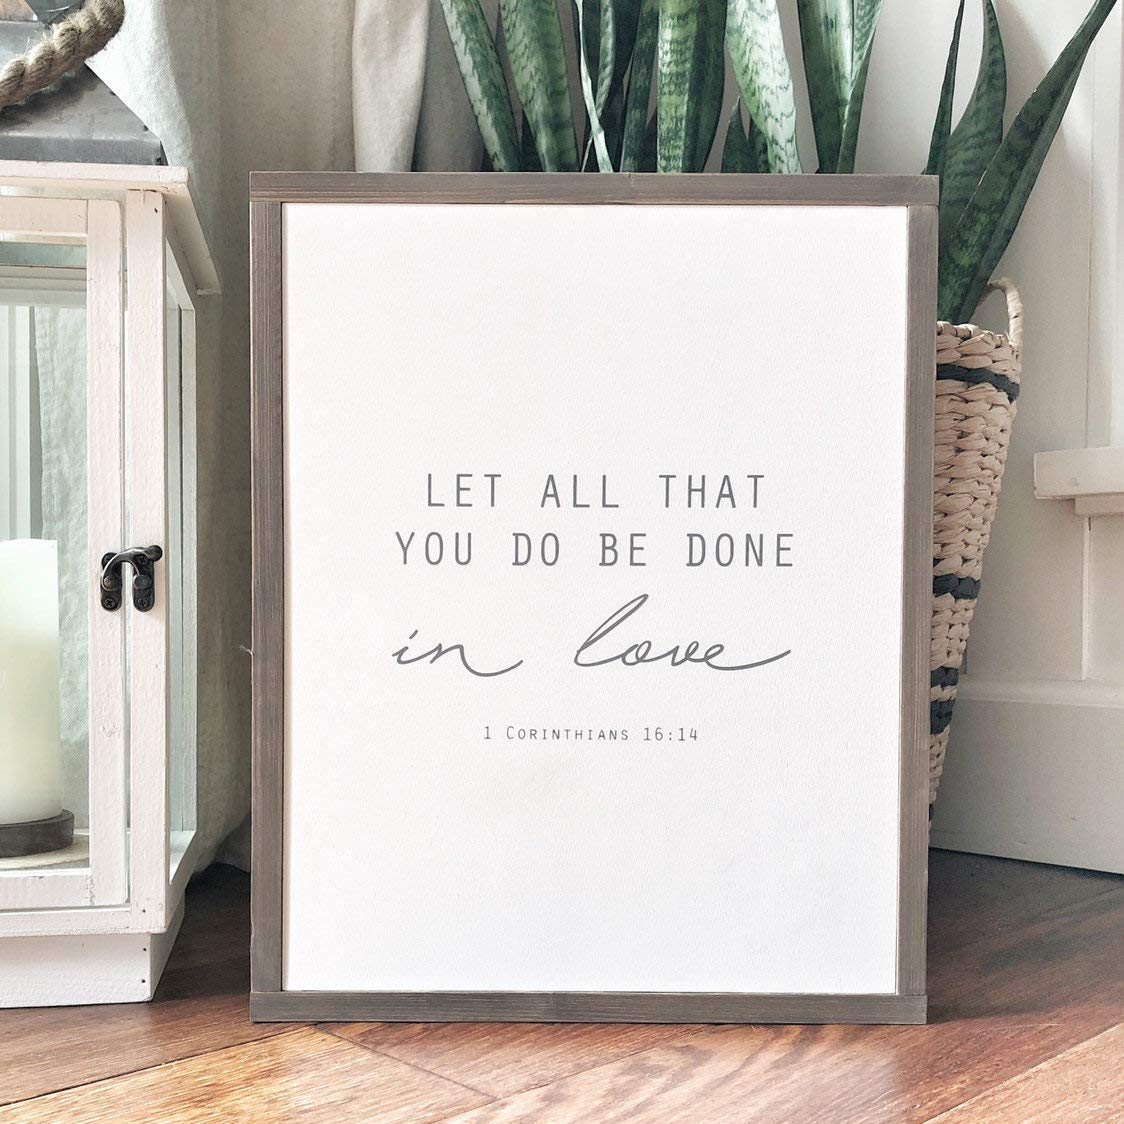 Let all that you do be done in love 1 corinthians 1614 Scripture wall art Bible verse decor